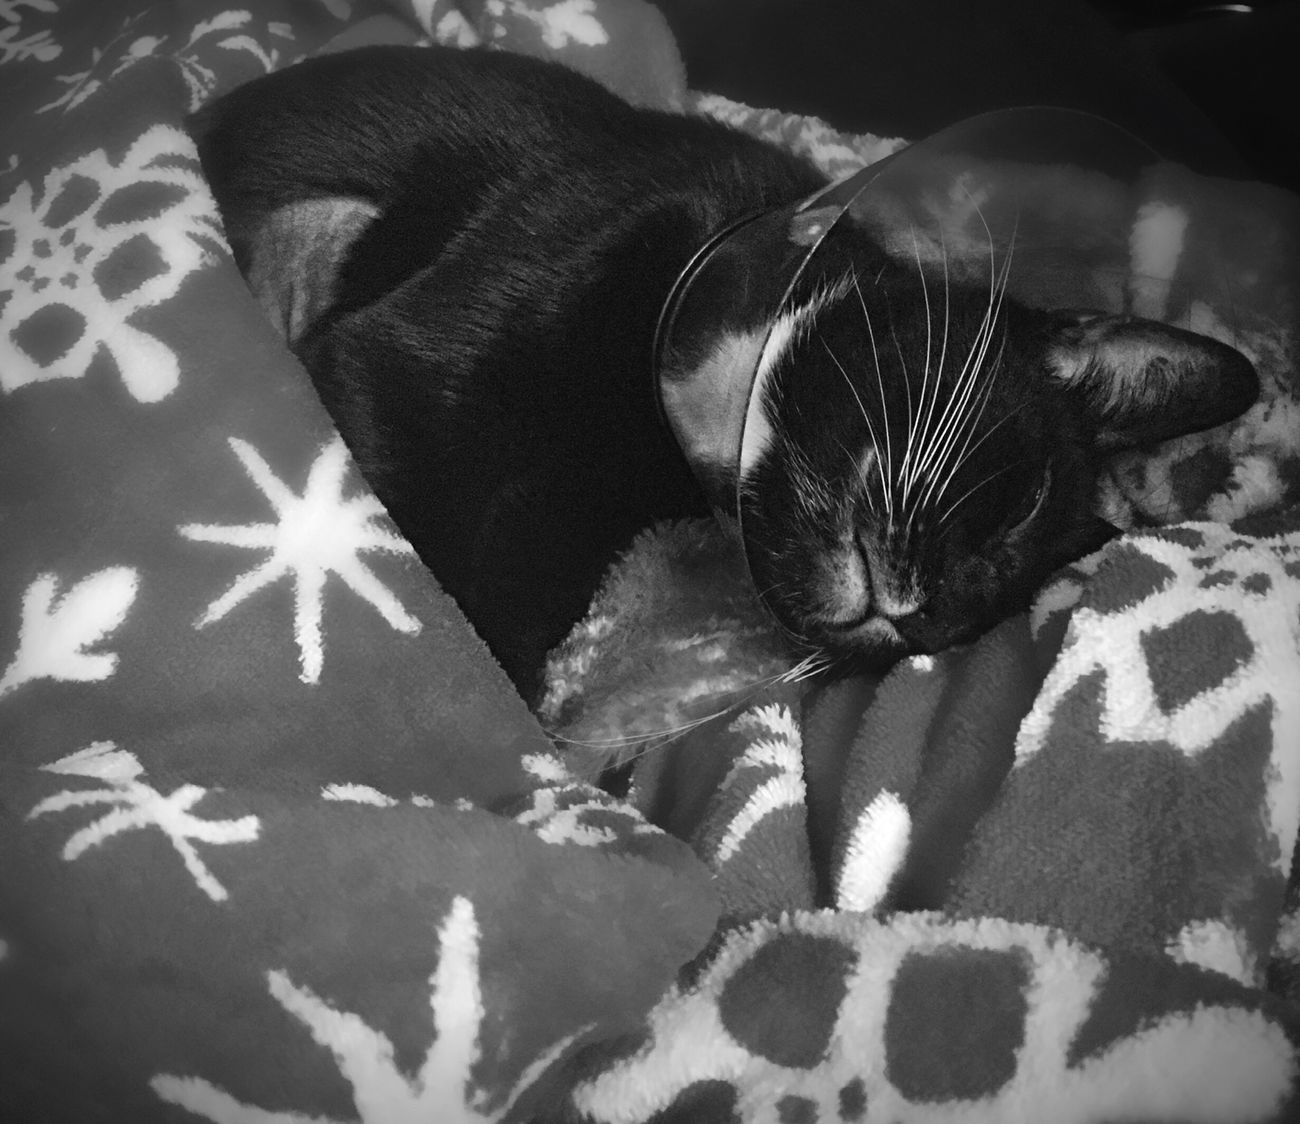 Sometimes you just need to cuddle with your mom (especially after surgery). Furbabymama Furbaby Sleeping Cat Blackandwhite